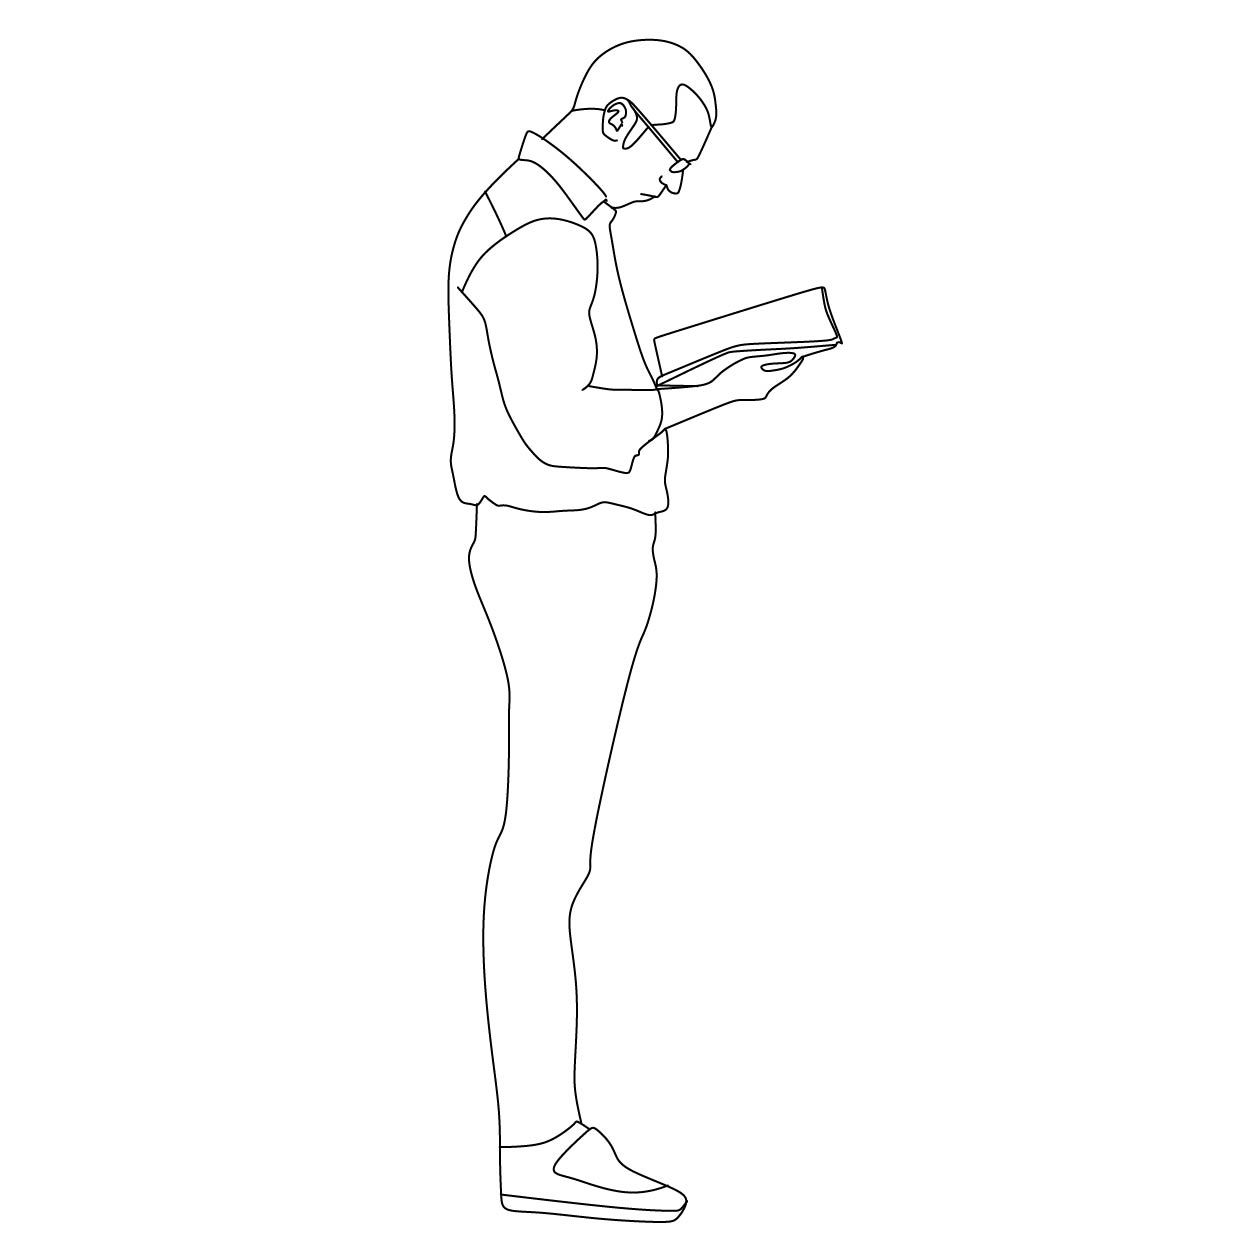 Man Reading A Book Silhouette Architecture Silhouette People Drawing People